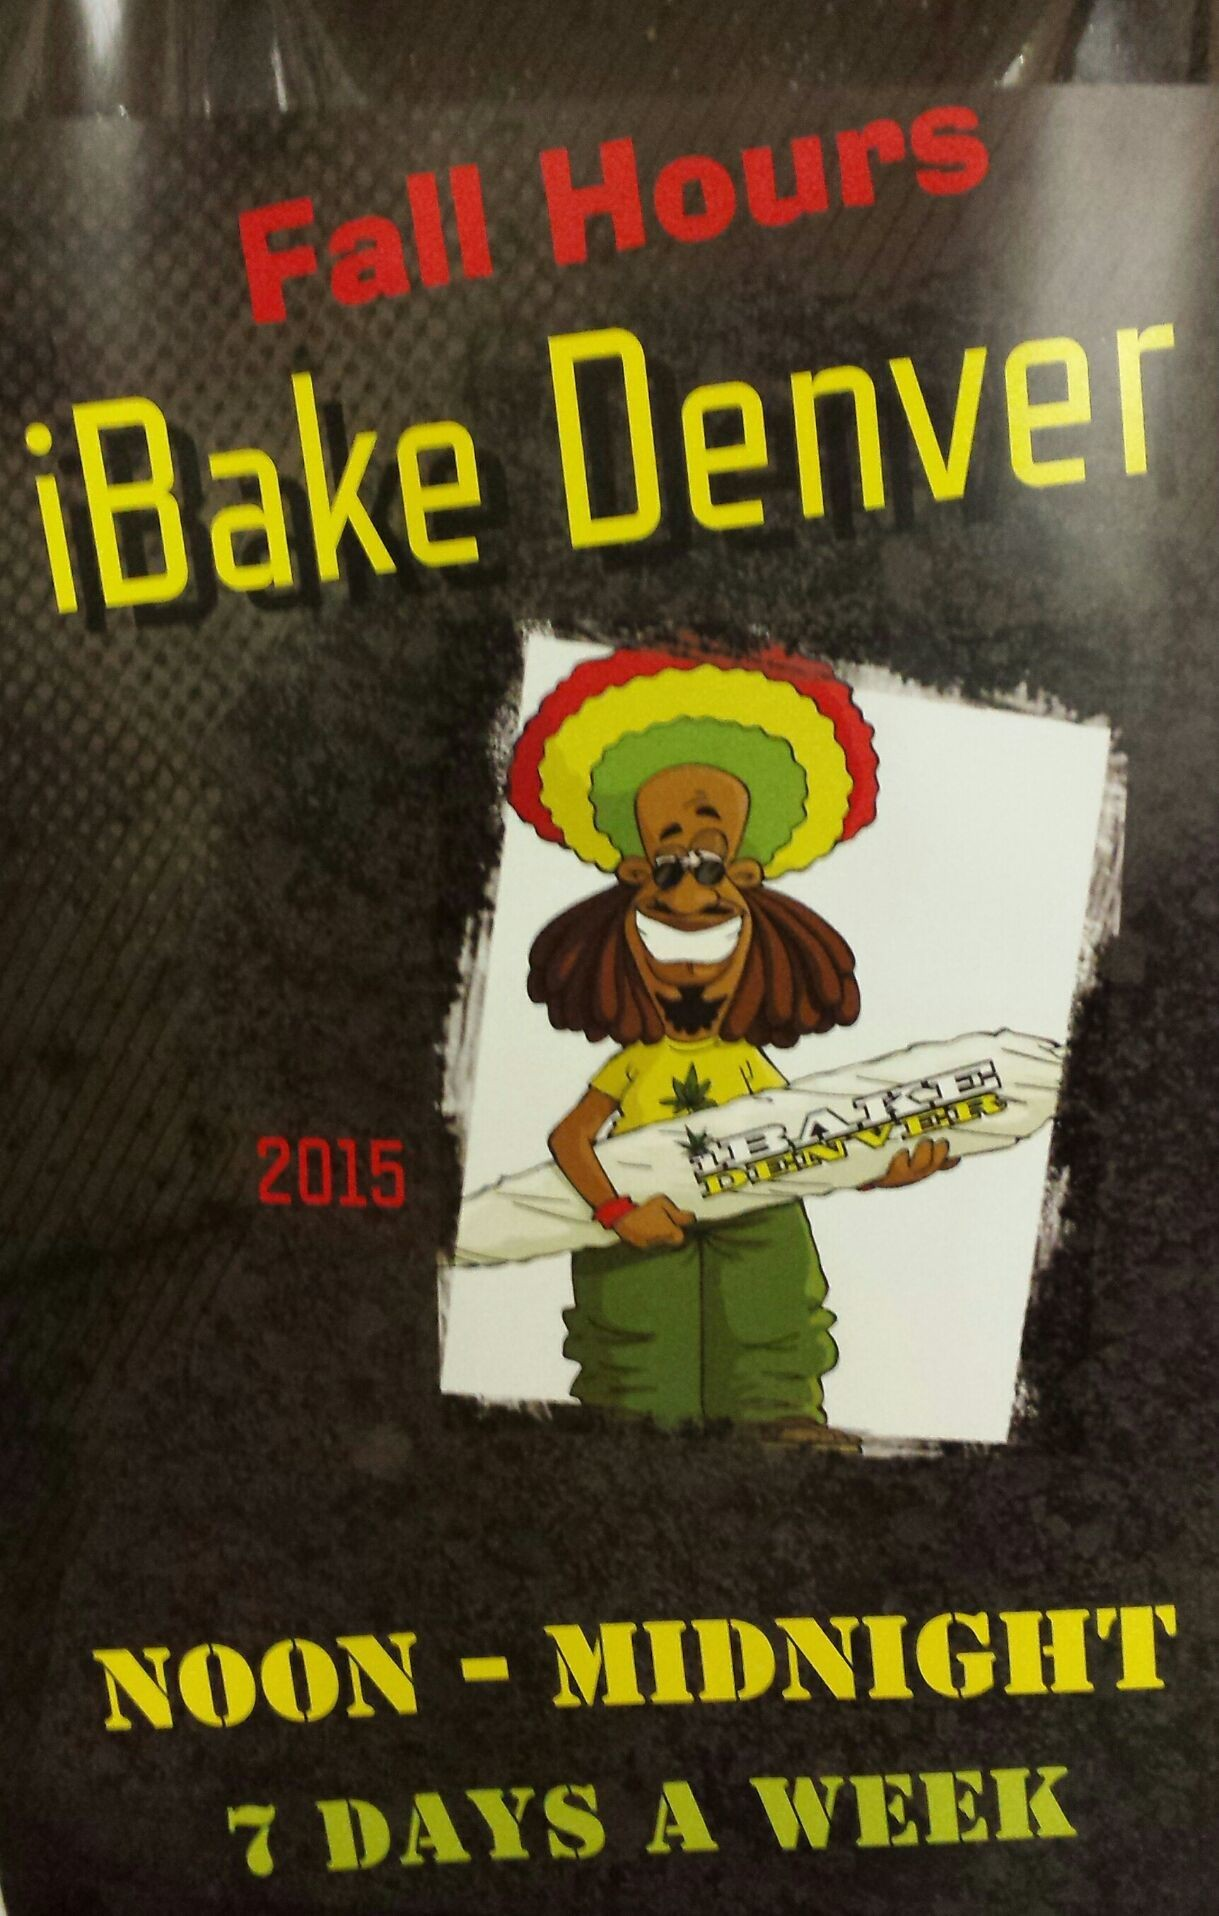 For more info on all our locations visit Www.iBakeDenver.com